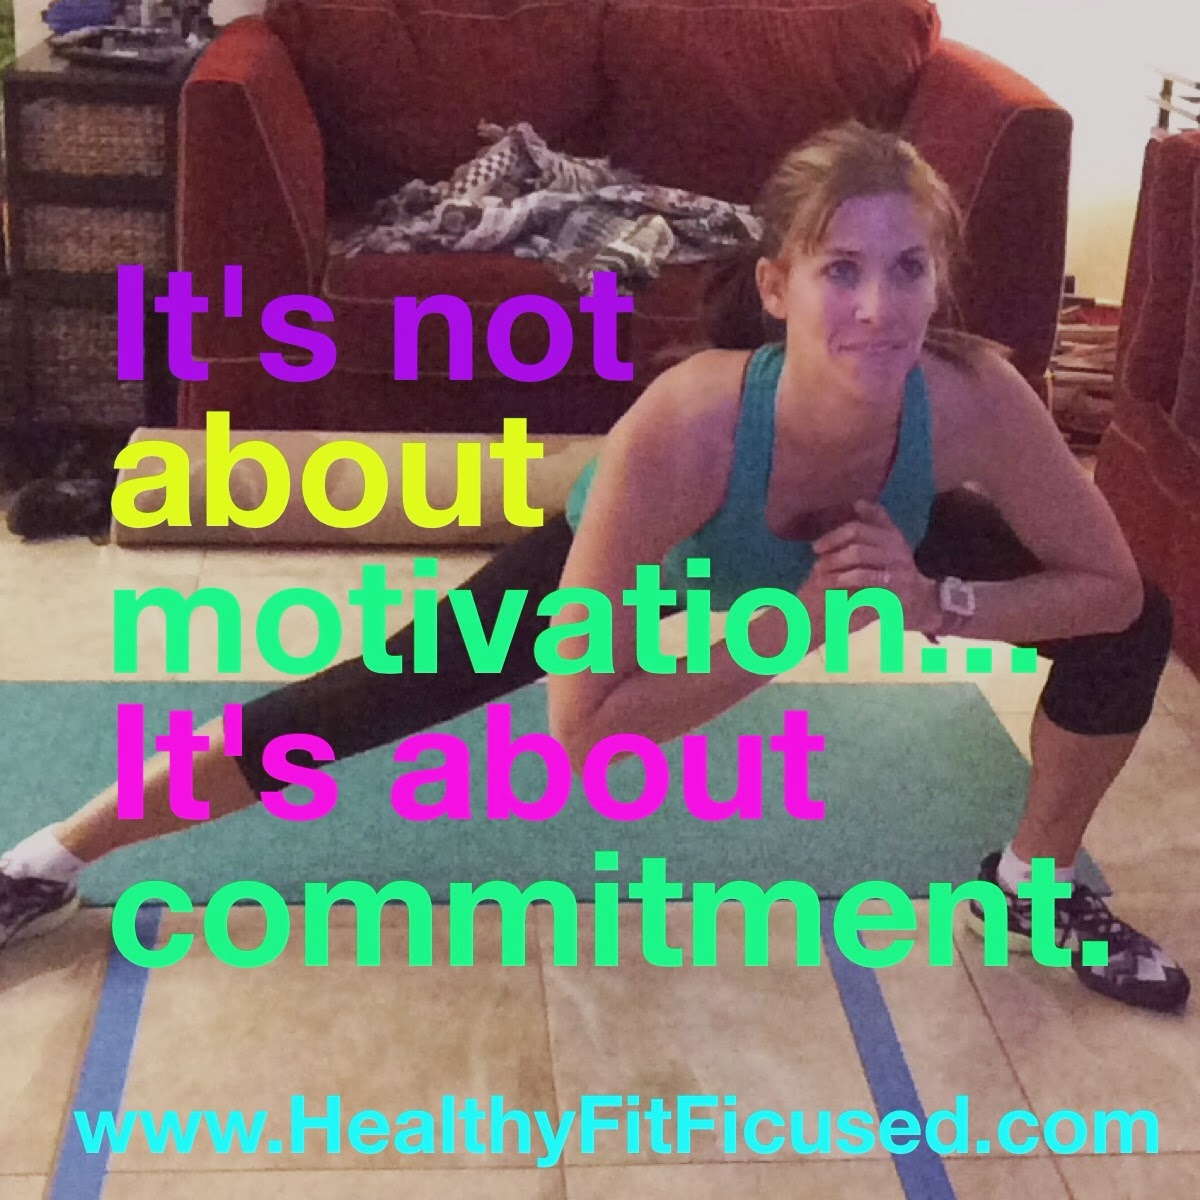 Commitment over motivation!  www.HealthyFitFocused.com, P90X3